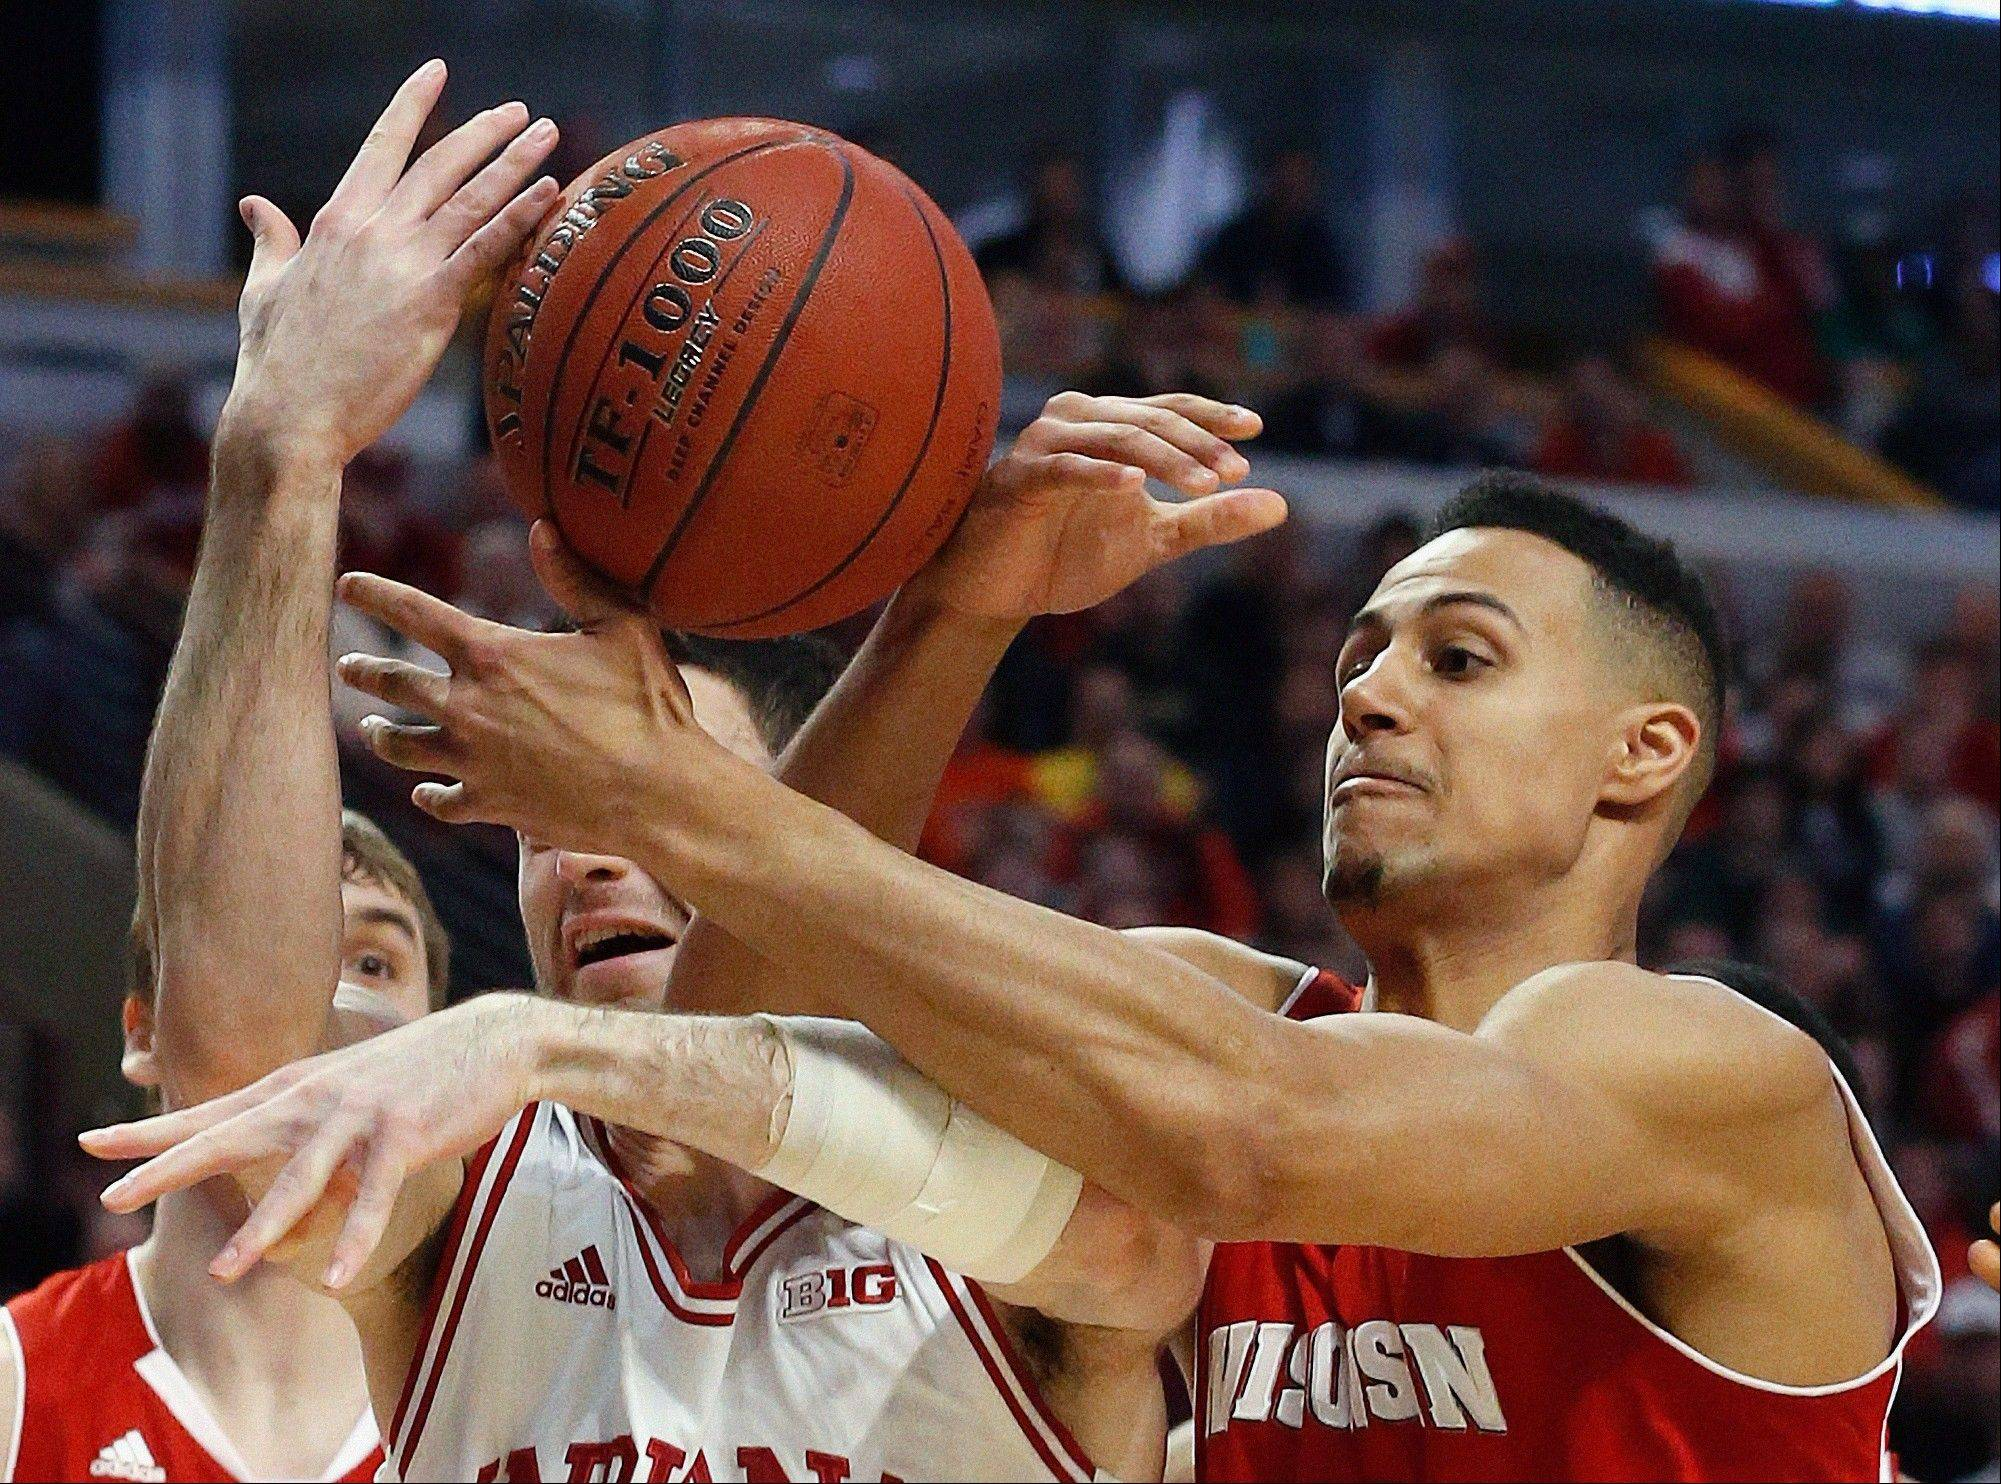 Indiana's Will Sheehey, left, and Wisconsin's Ryan Evans battle for a loose ball during the first half of an NCAA college basketball game in the semifinals of the Big Ten tournament Saturday, March 16, 2013, in Chicago.